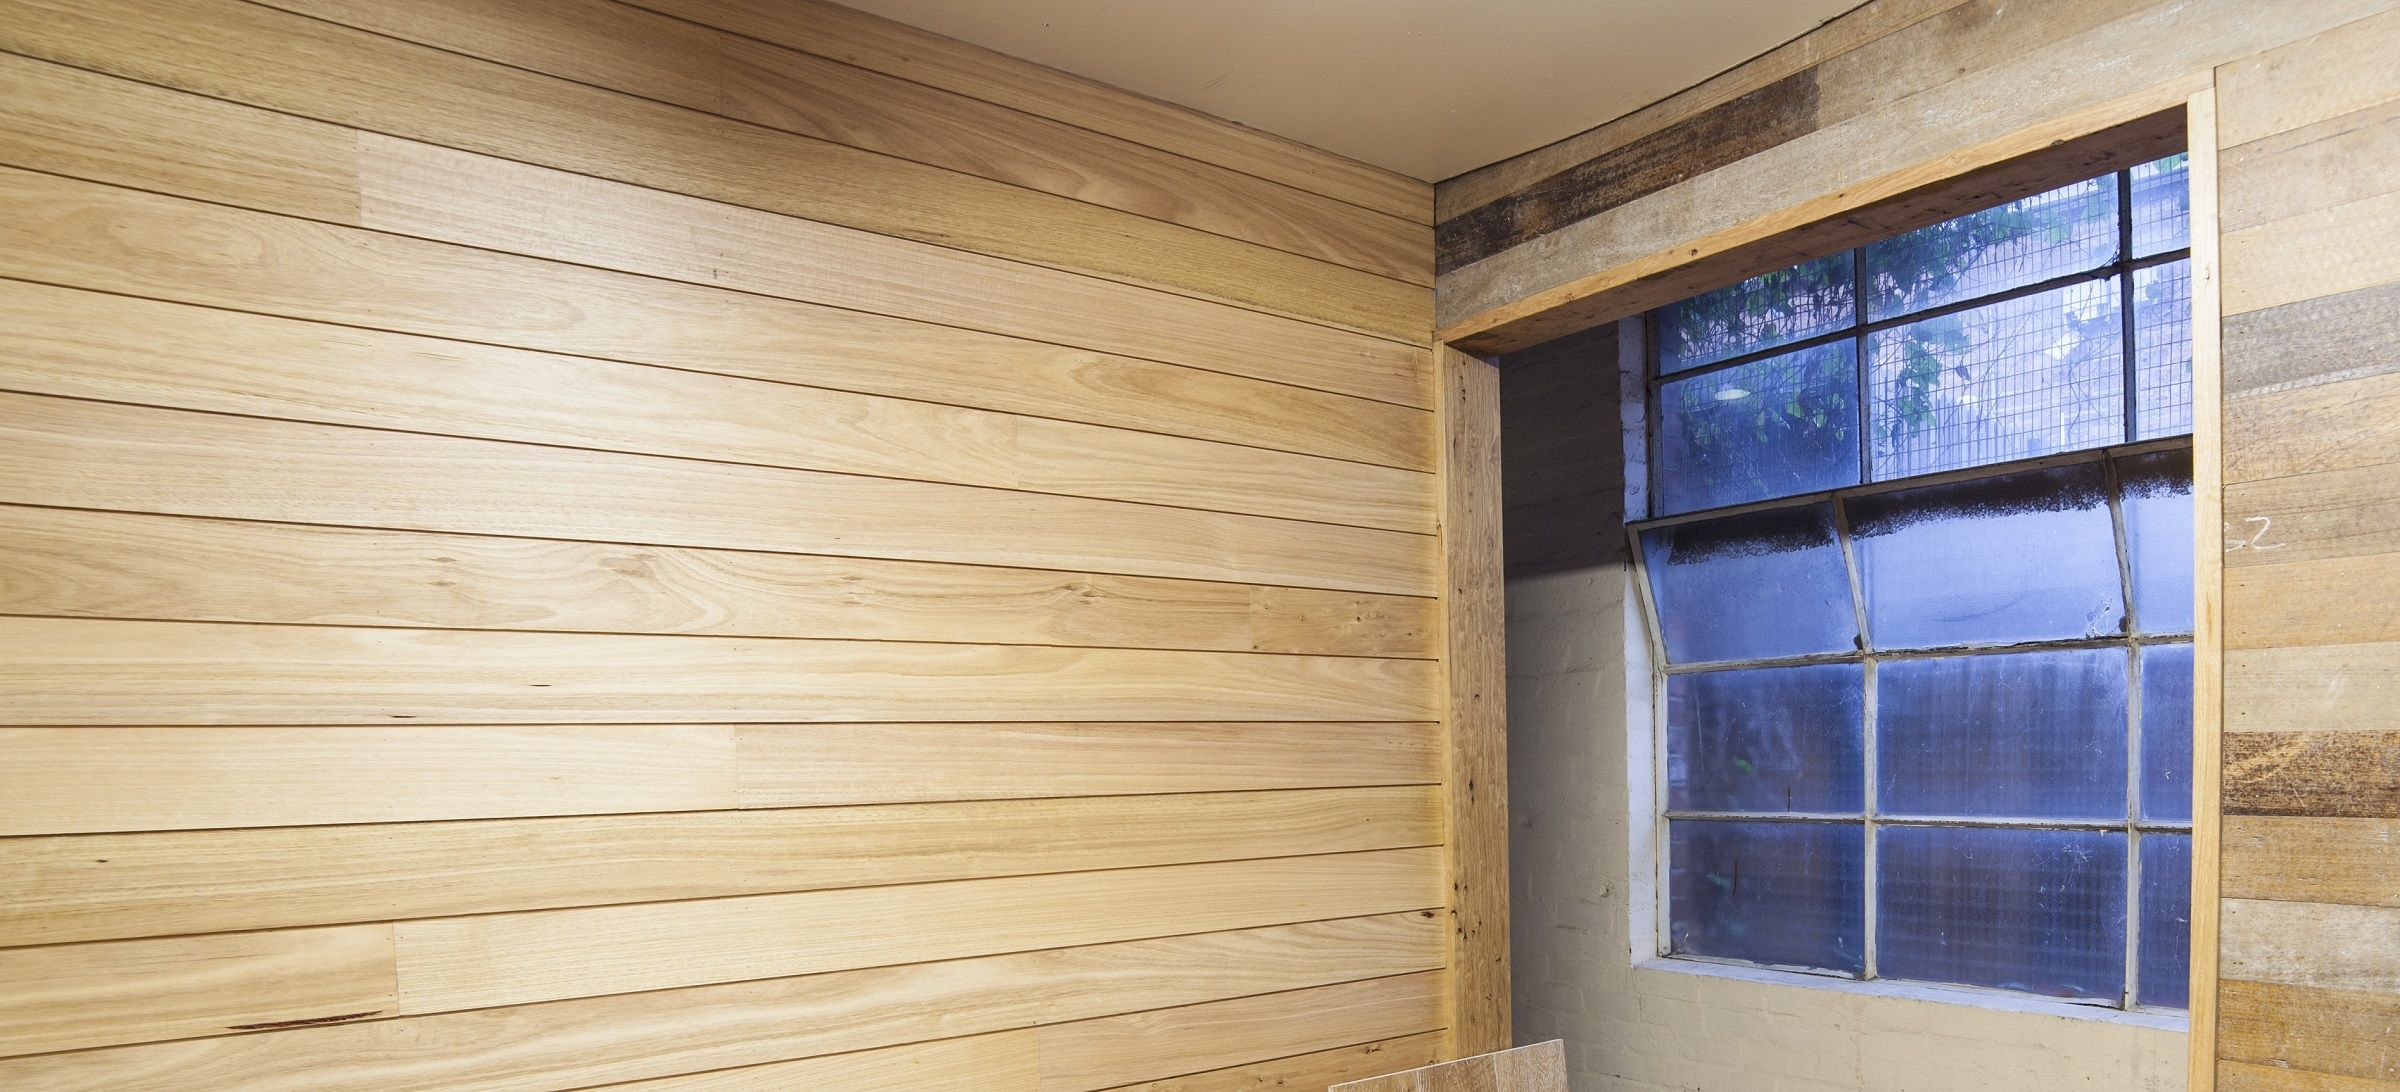 beautiful timber wall lining - Google Search | Timber Wall Lining ...